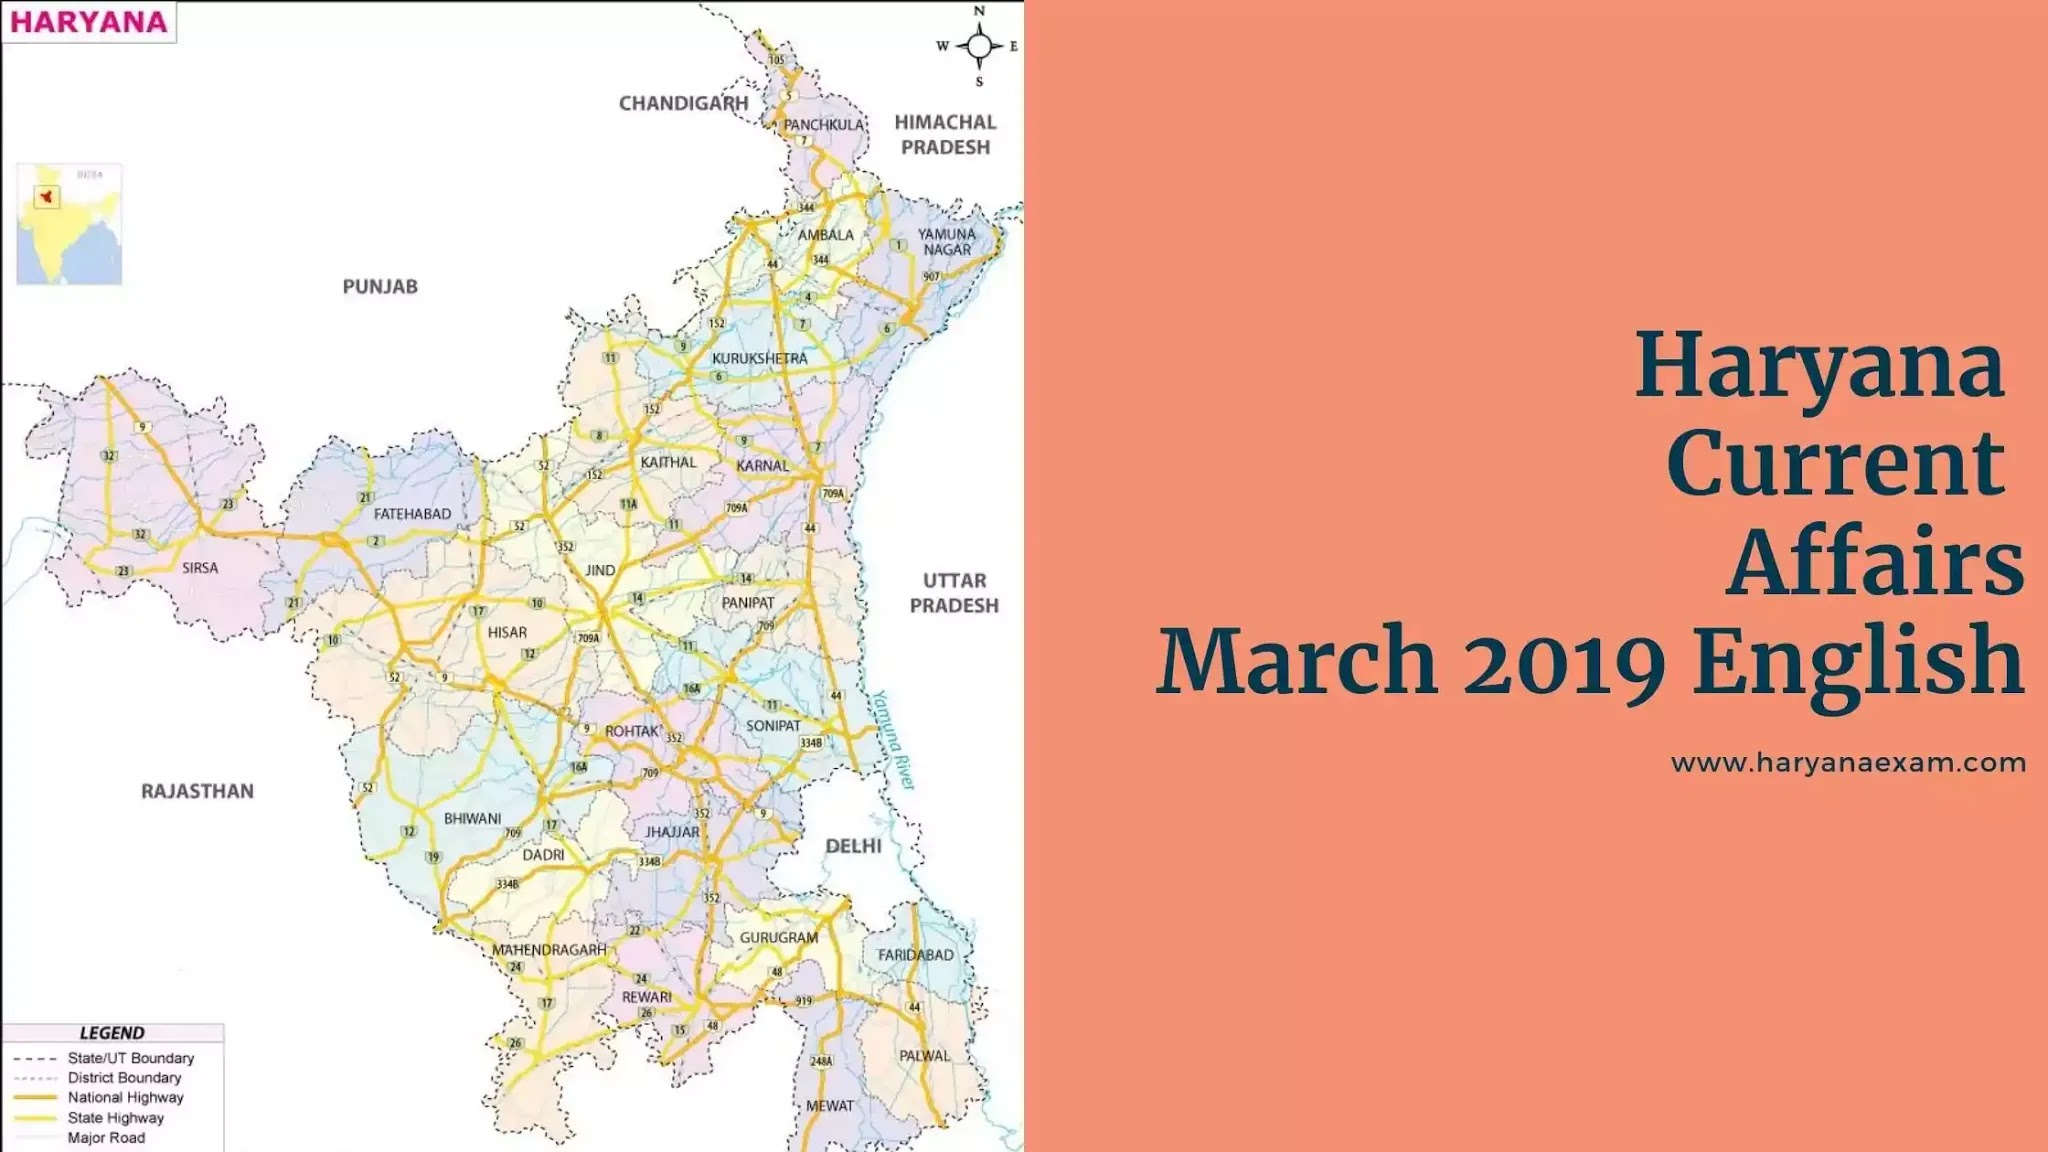 Haryana Current Affairs March 2019 in English